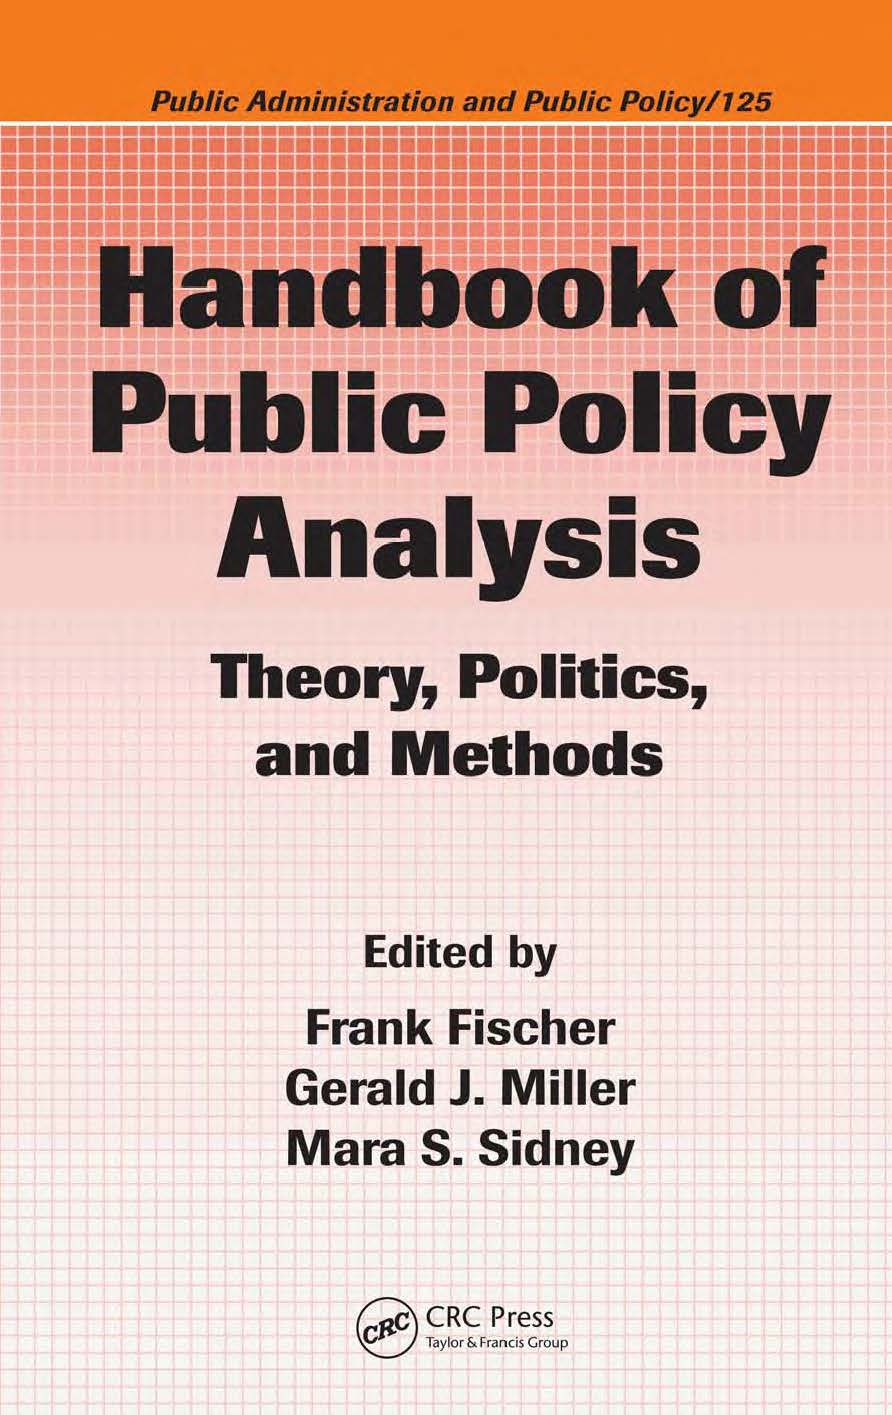 Handbook of Public Policy Analysis: Theory, Politics, and Methods - 1001 Ebook - Free Ebook Download